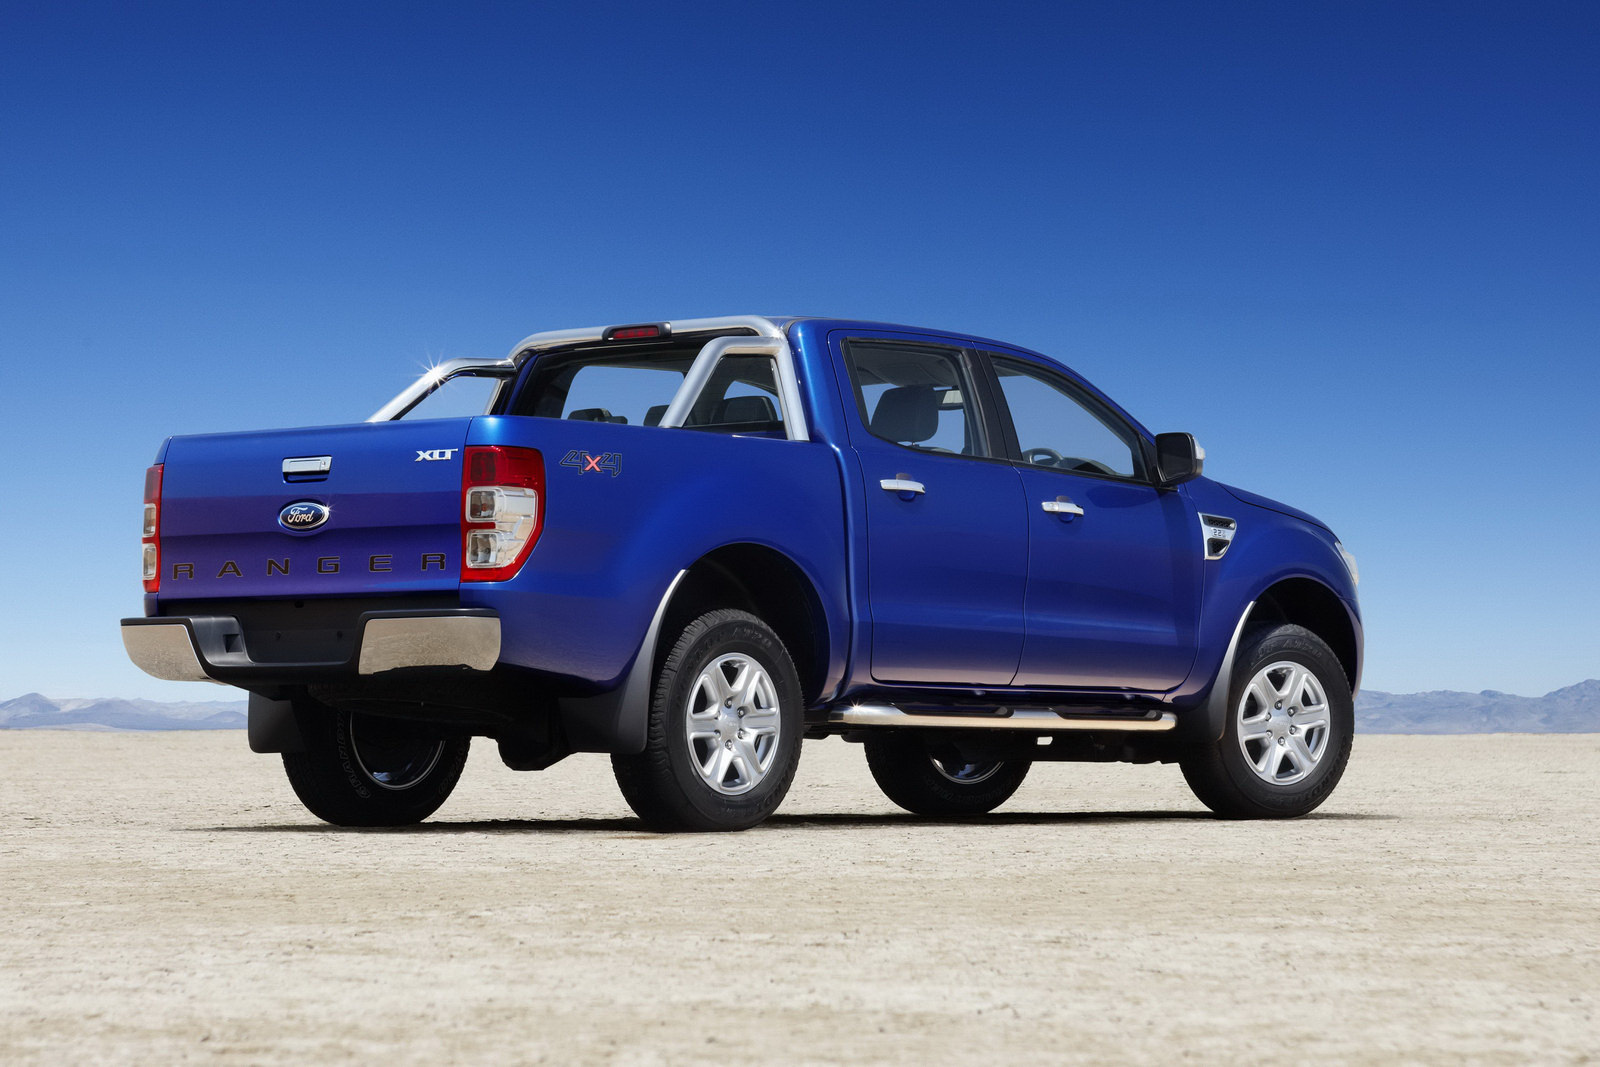 Terenska vozila 2012 Ford Ranger Pickup Truck Rear View